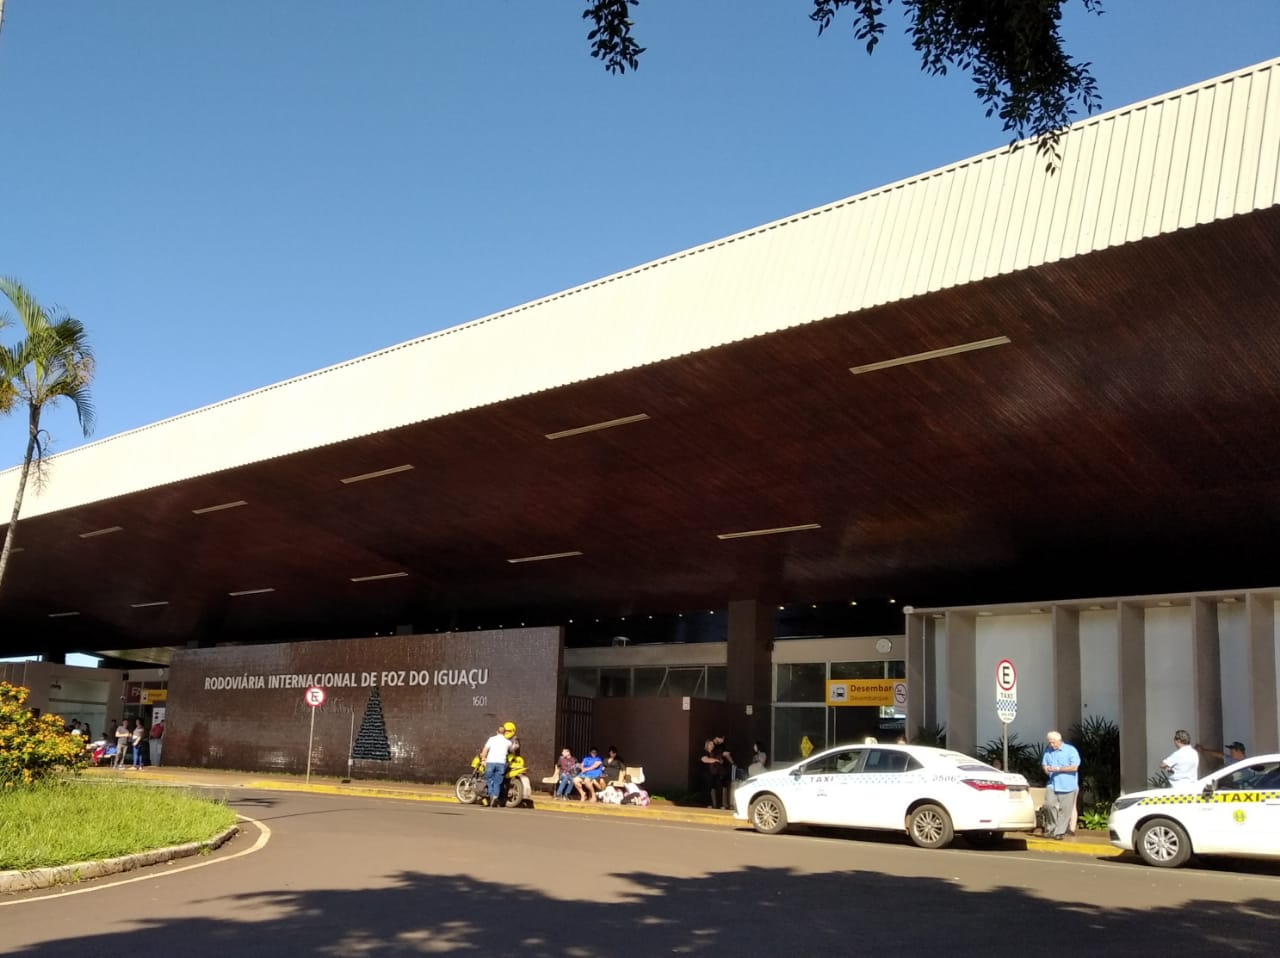 Terminal de Foz do Iguazu